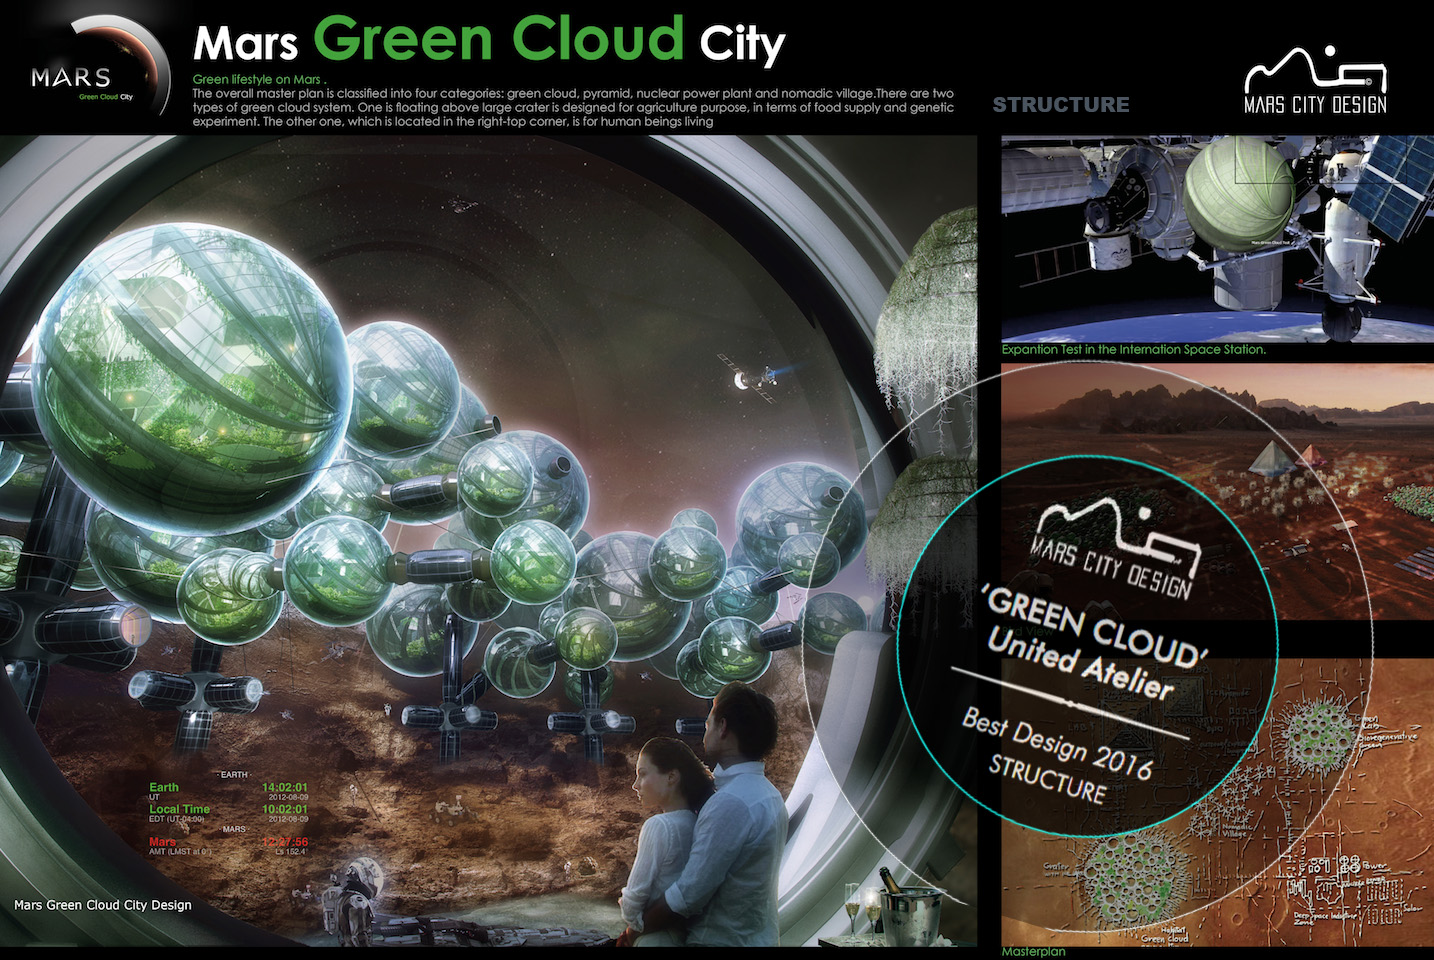 Green Cloud City